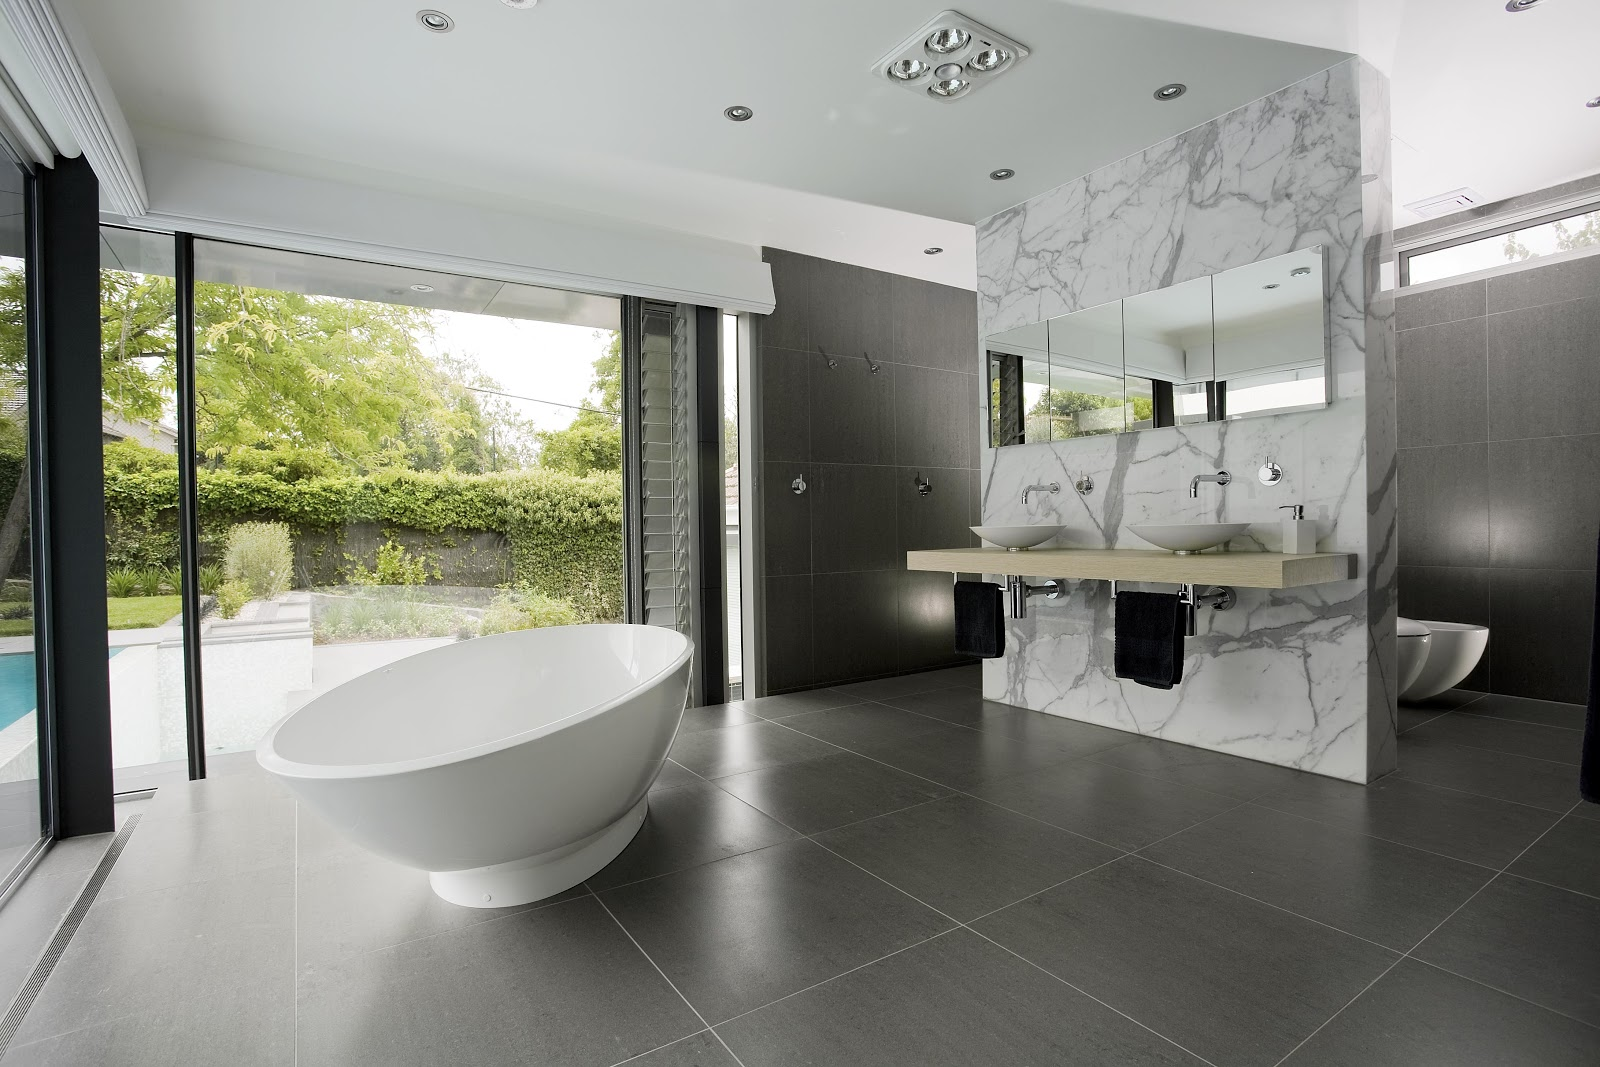 open plan showers - gray and white minimalist bath in Australian home - minosadesign via Atticmag